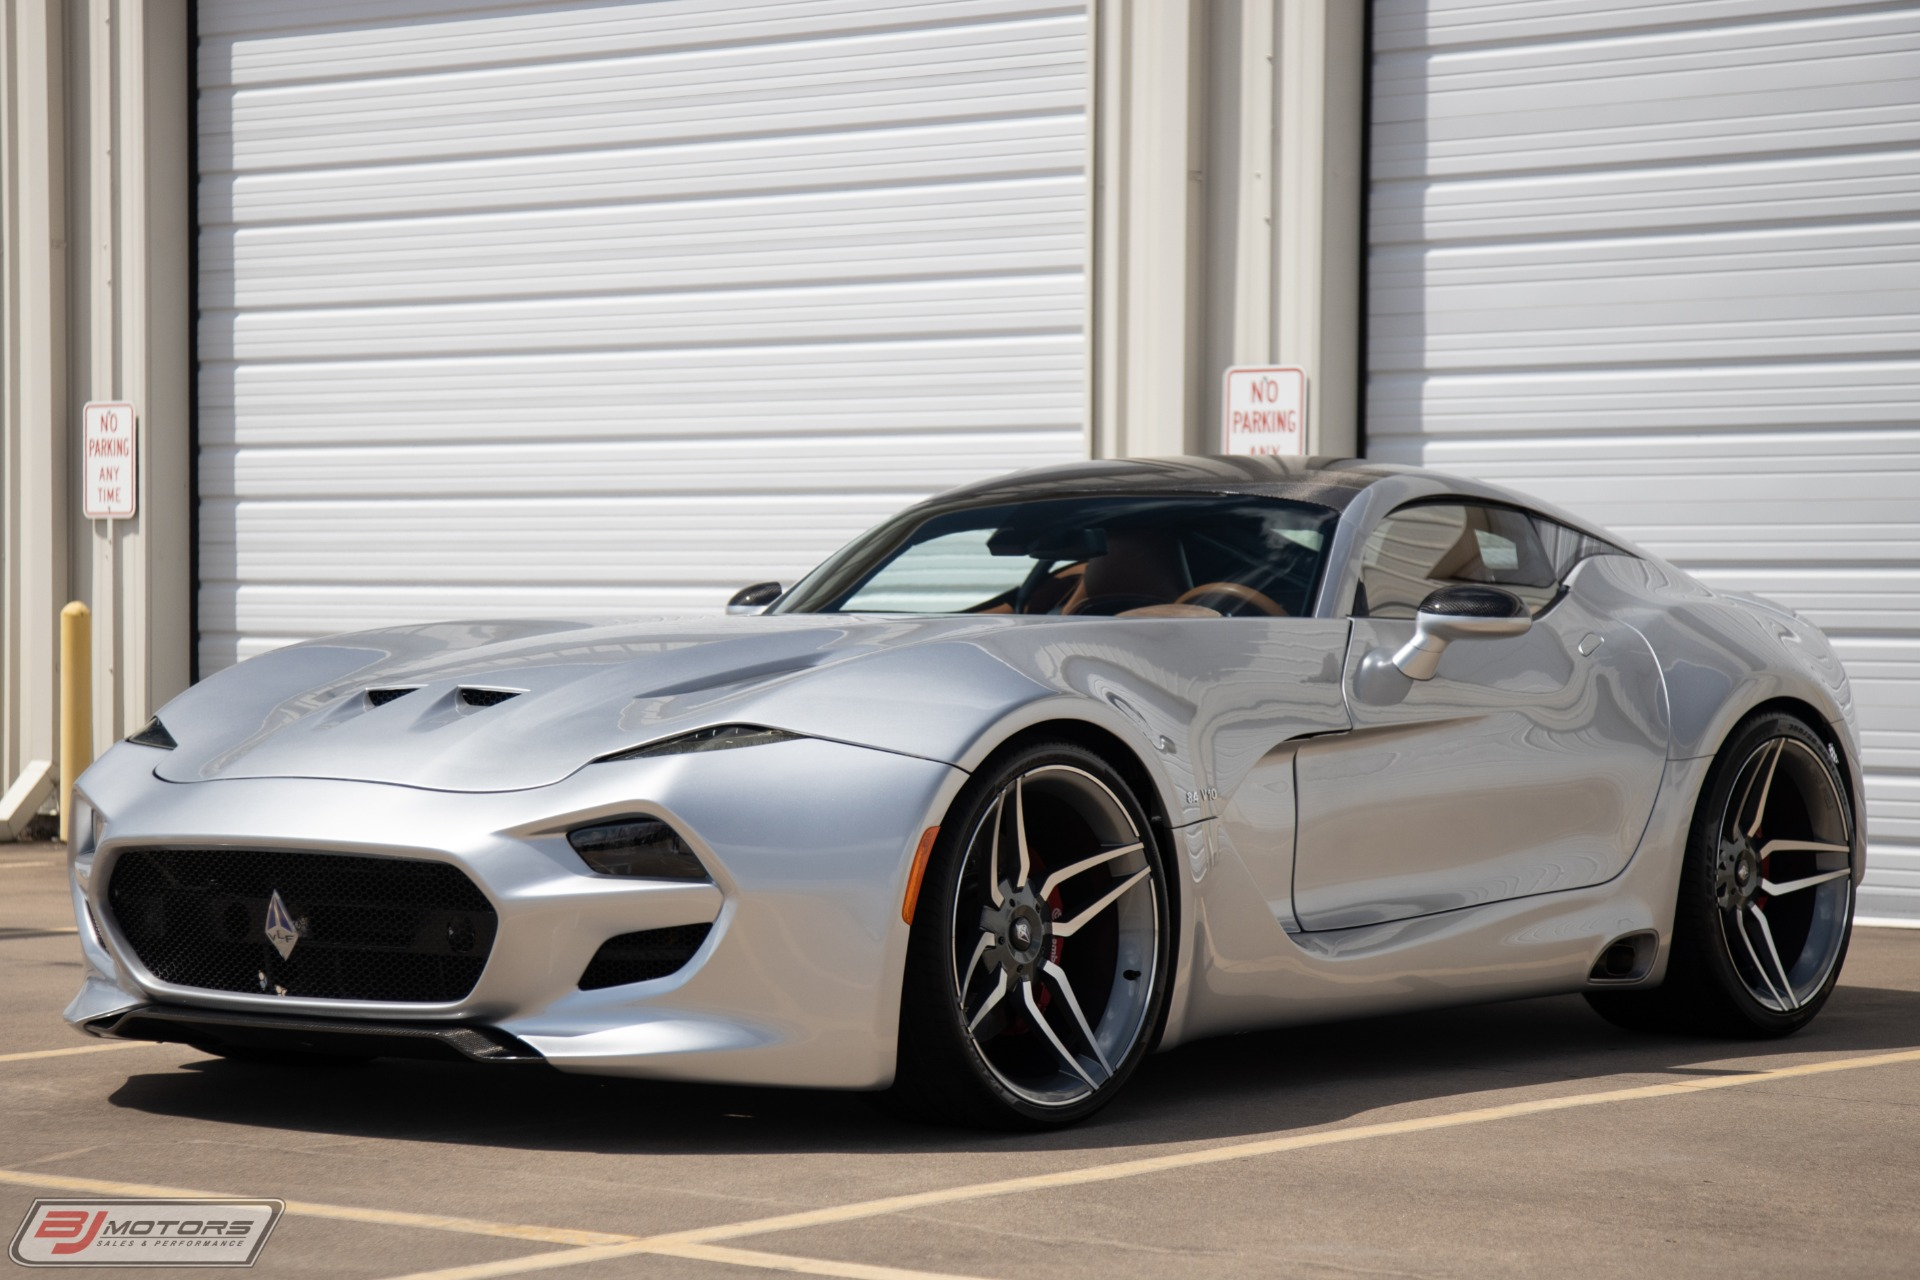 Used-2018-VLF-Automotive-Force-1-V10-Limited-Production-Supercar!